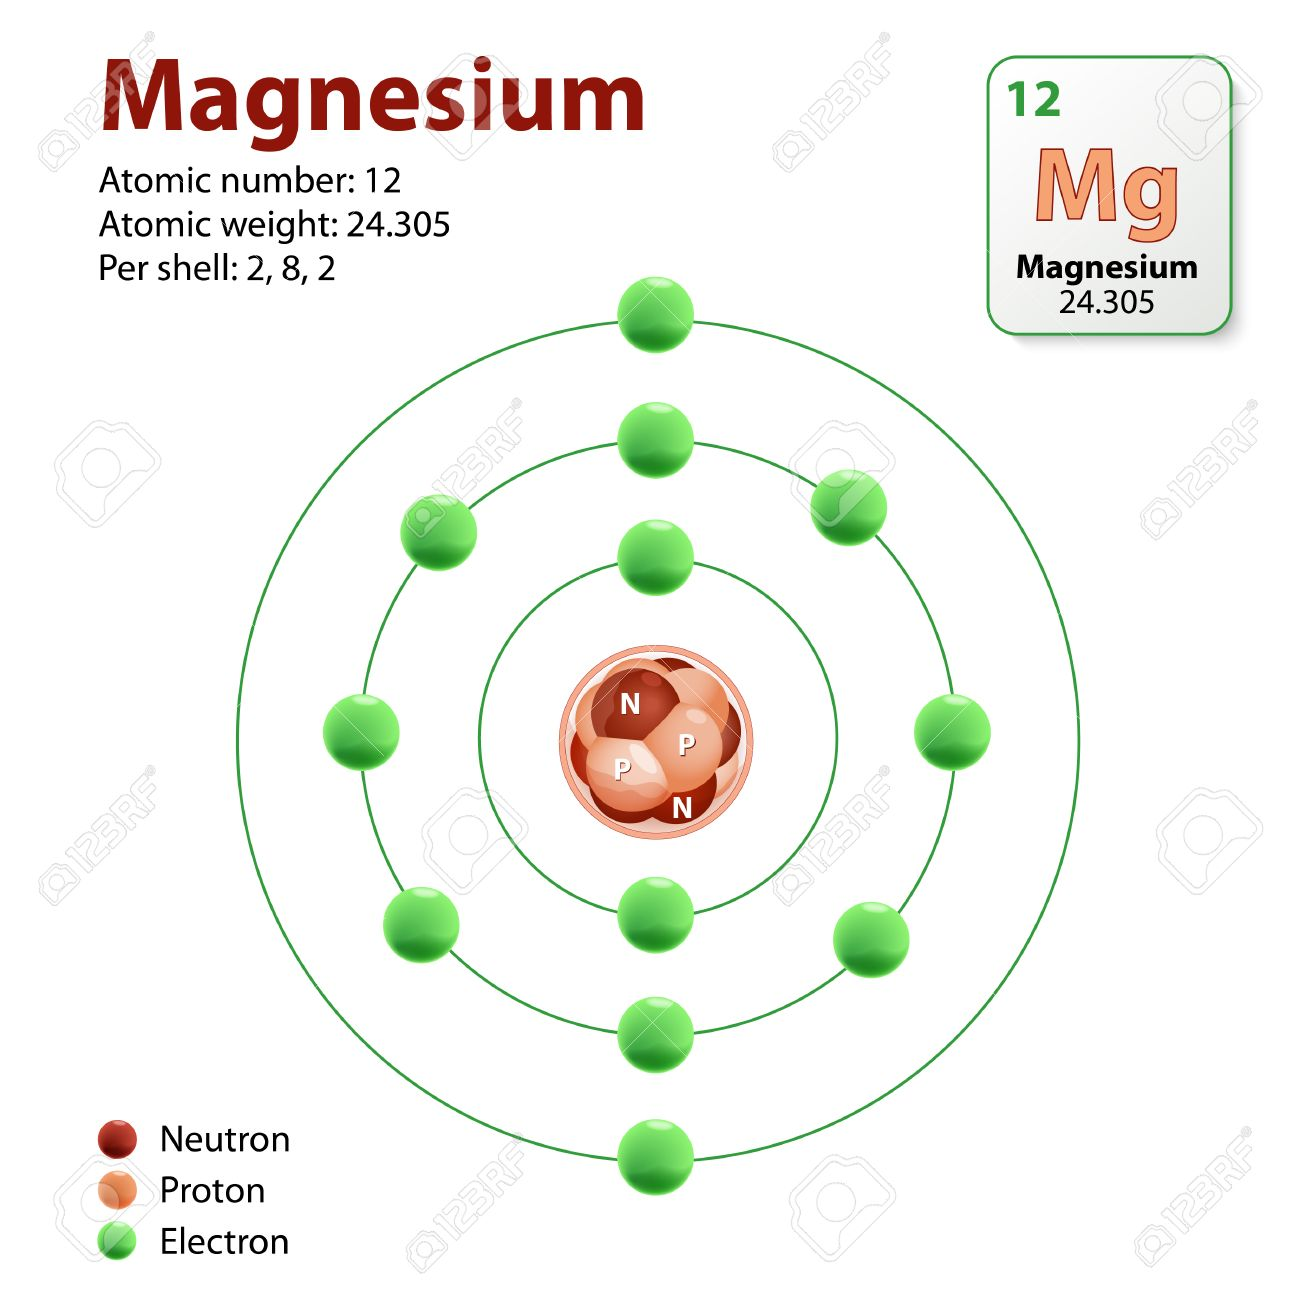 hight resolution of magnesium atom diagram representation of the element magnesium neutrons protons and electrons stock